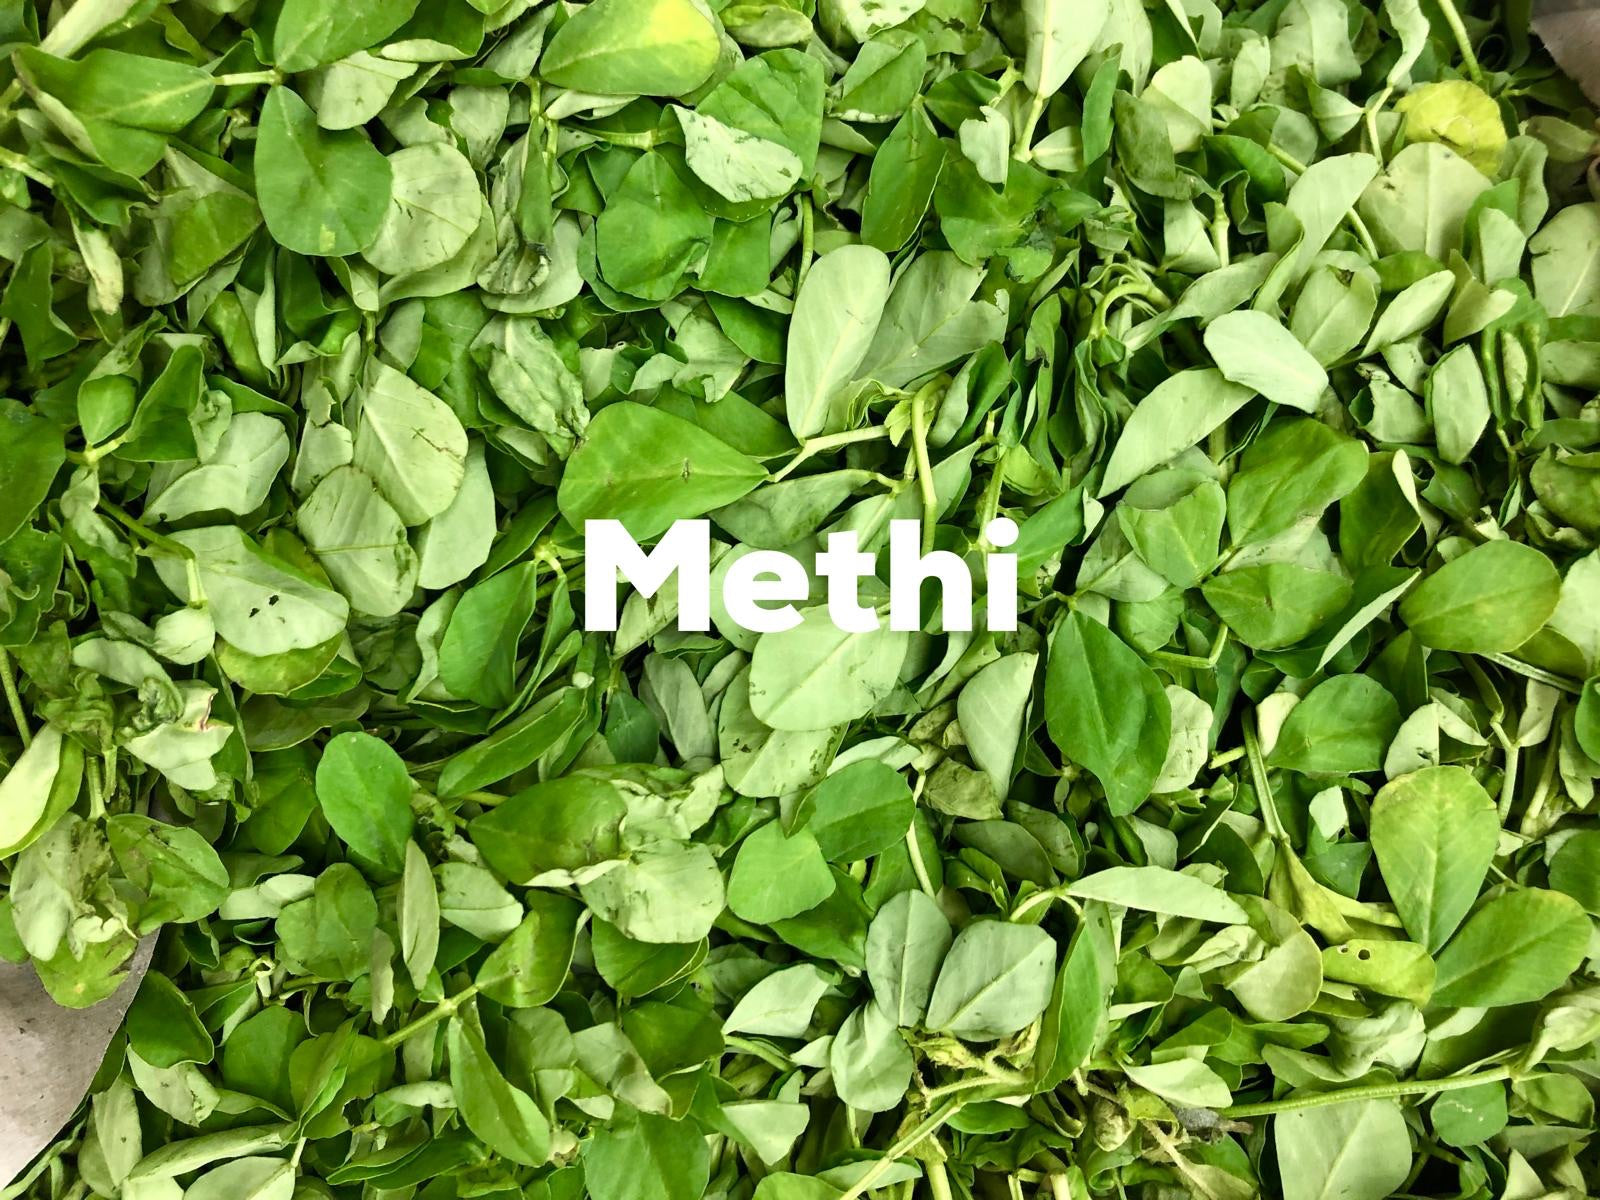 Fresh Indian Methi Per Bunch